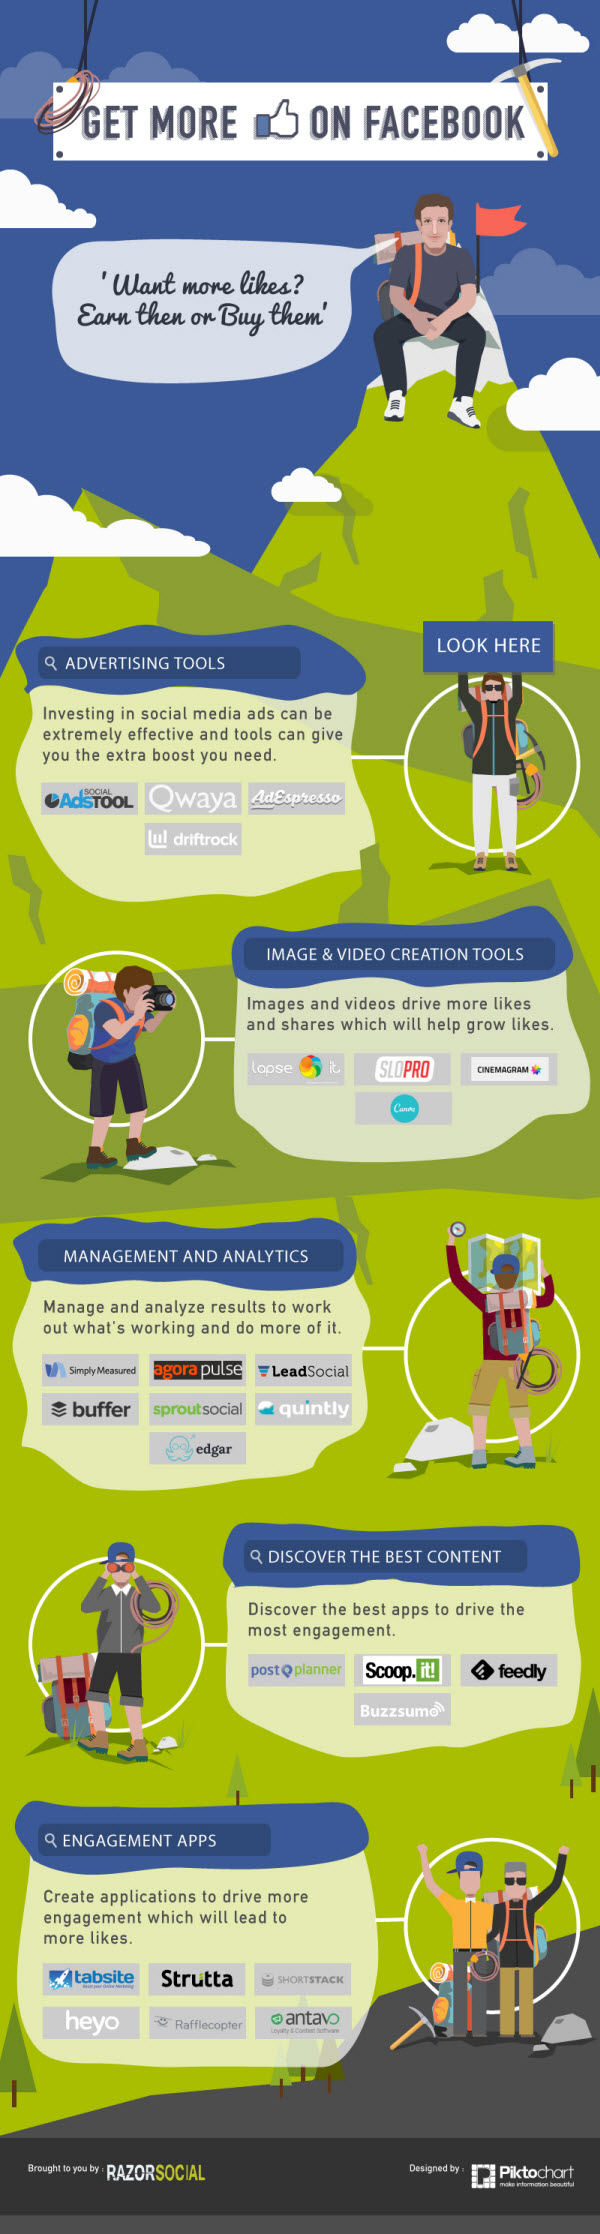 25 Facebook Tools Marketers Should Consider - infographic